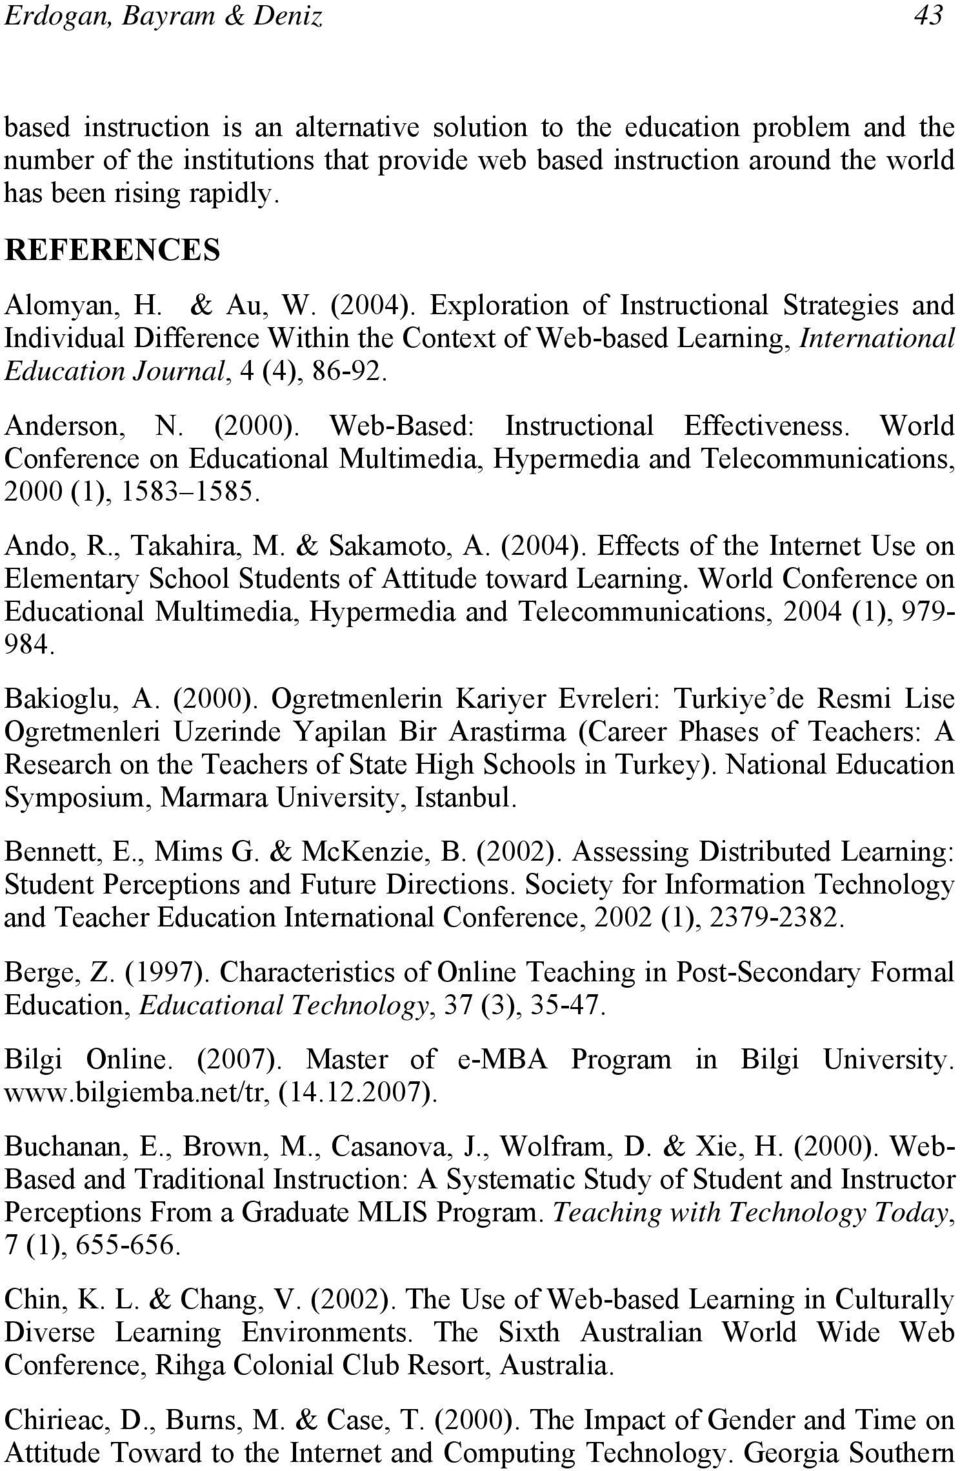 Exploration of Instructional Strategies and Individual Difference Within the Context of Web-based Learning, International Education Journal, 4 (4), 86-92. Anderson, N. (2000).